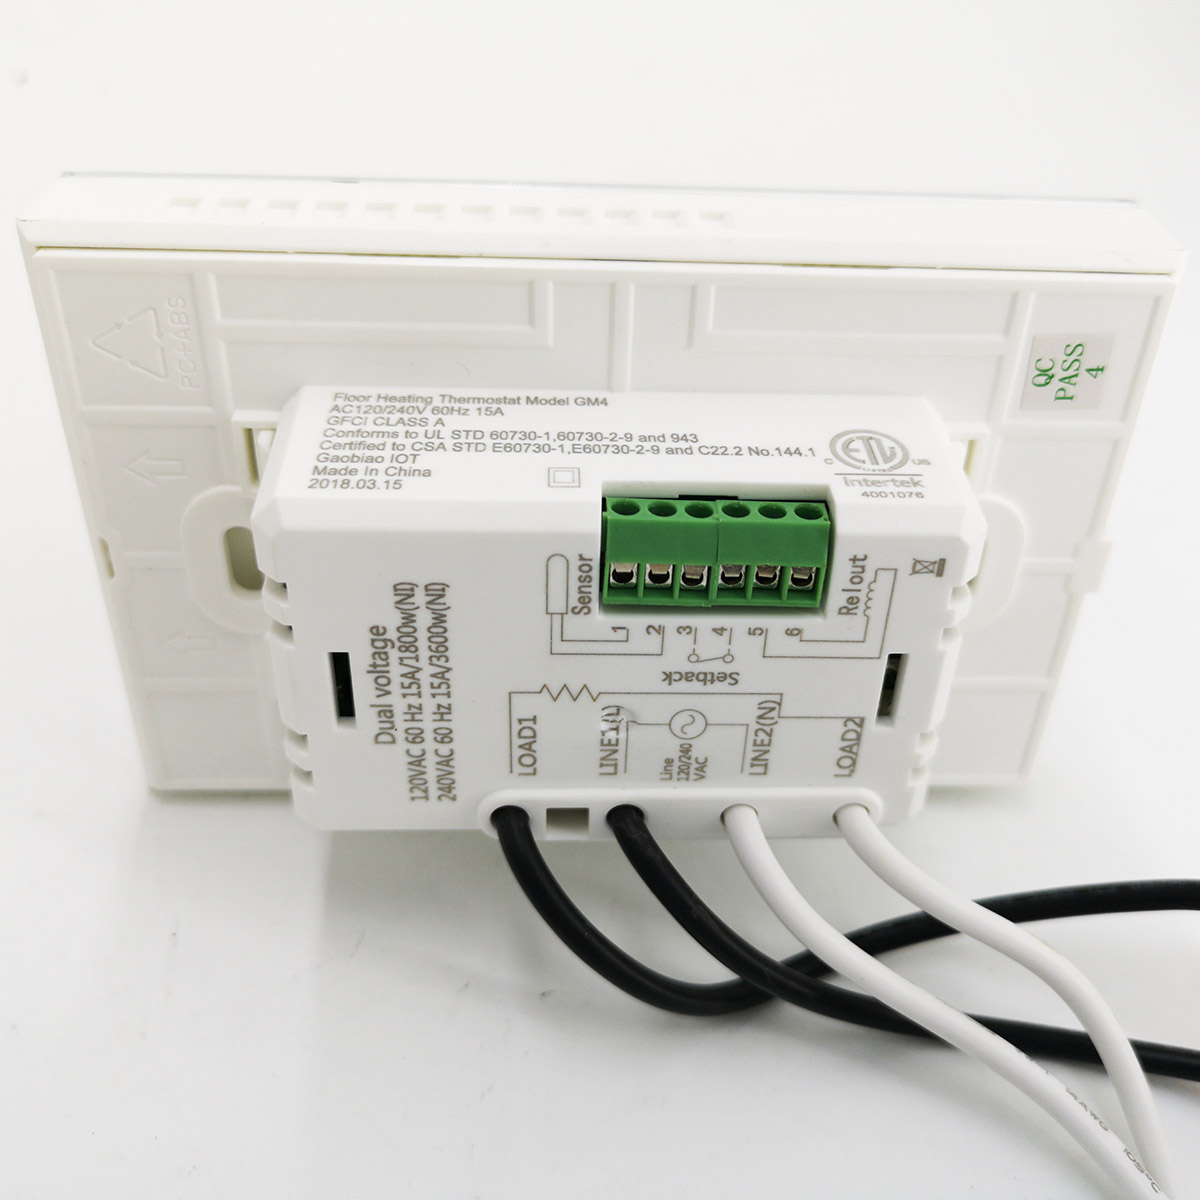 Programmable Underfloor Heating Thermostat 120 240v Lcd Display And Gfci Wiring Diagram Voltage With Floor Sensor